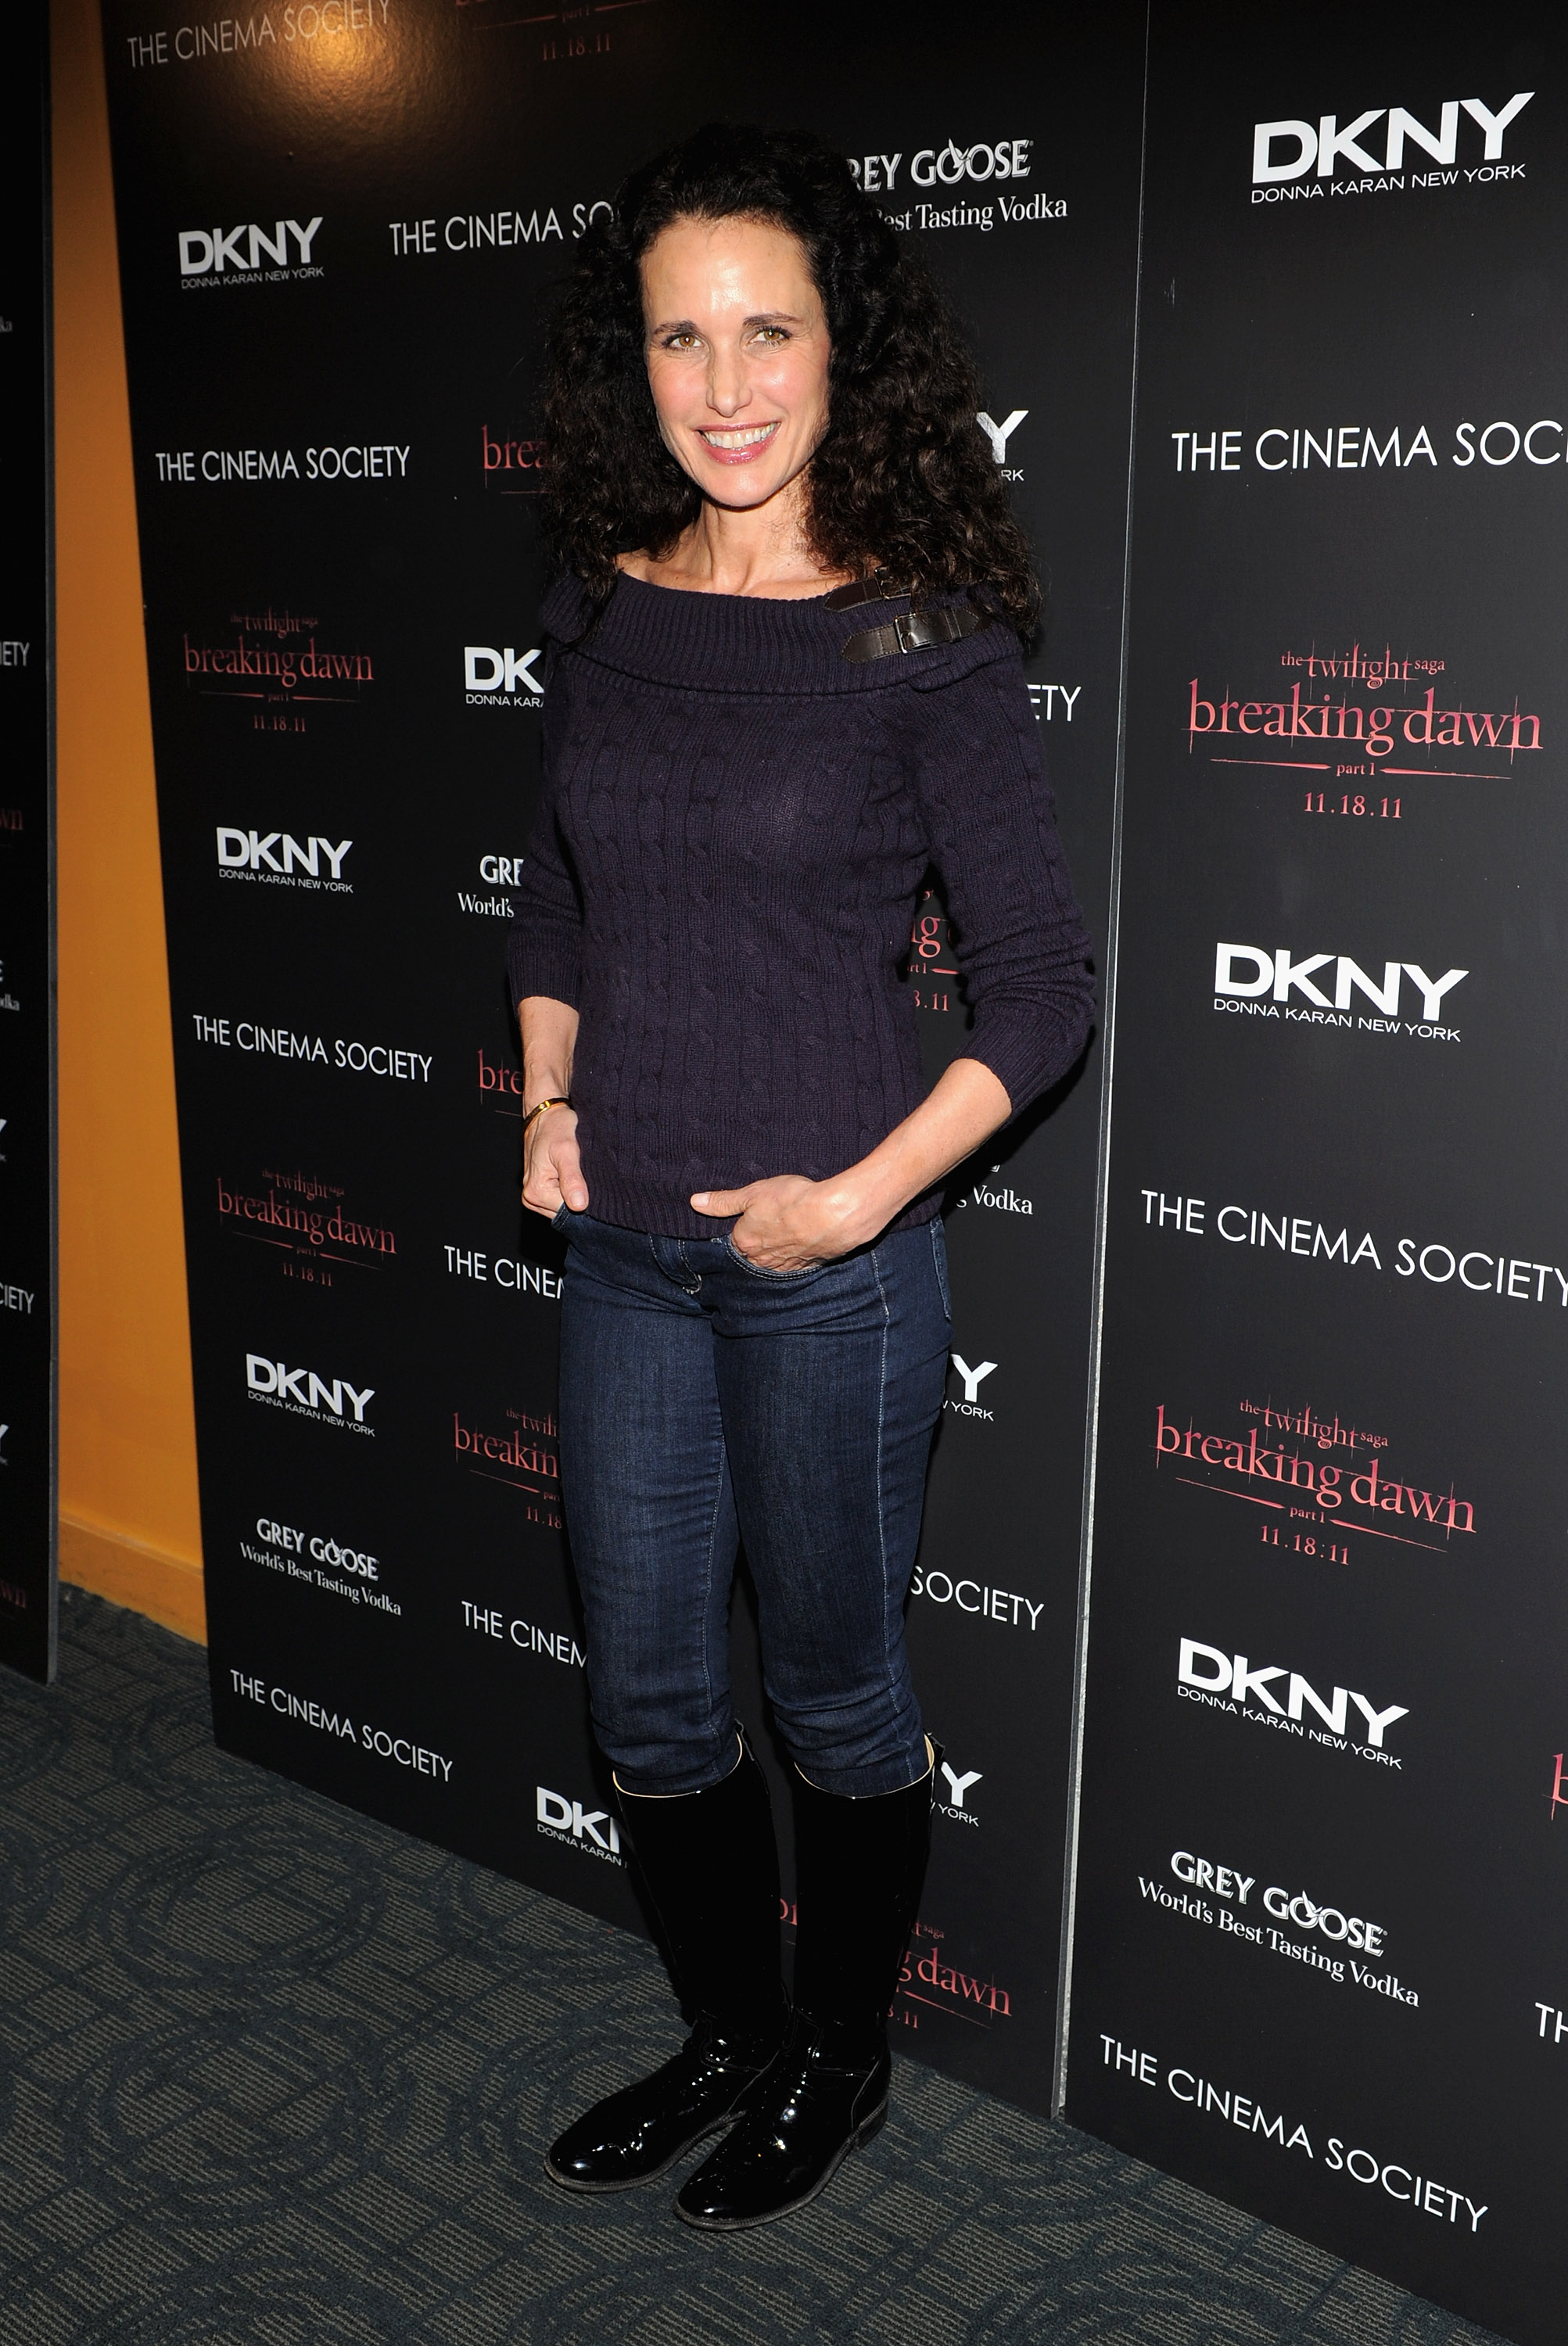 Andie MacDowell attended a screening of Breaking Dawn in NYC.